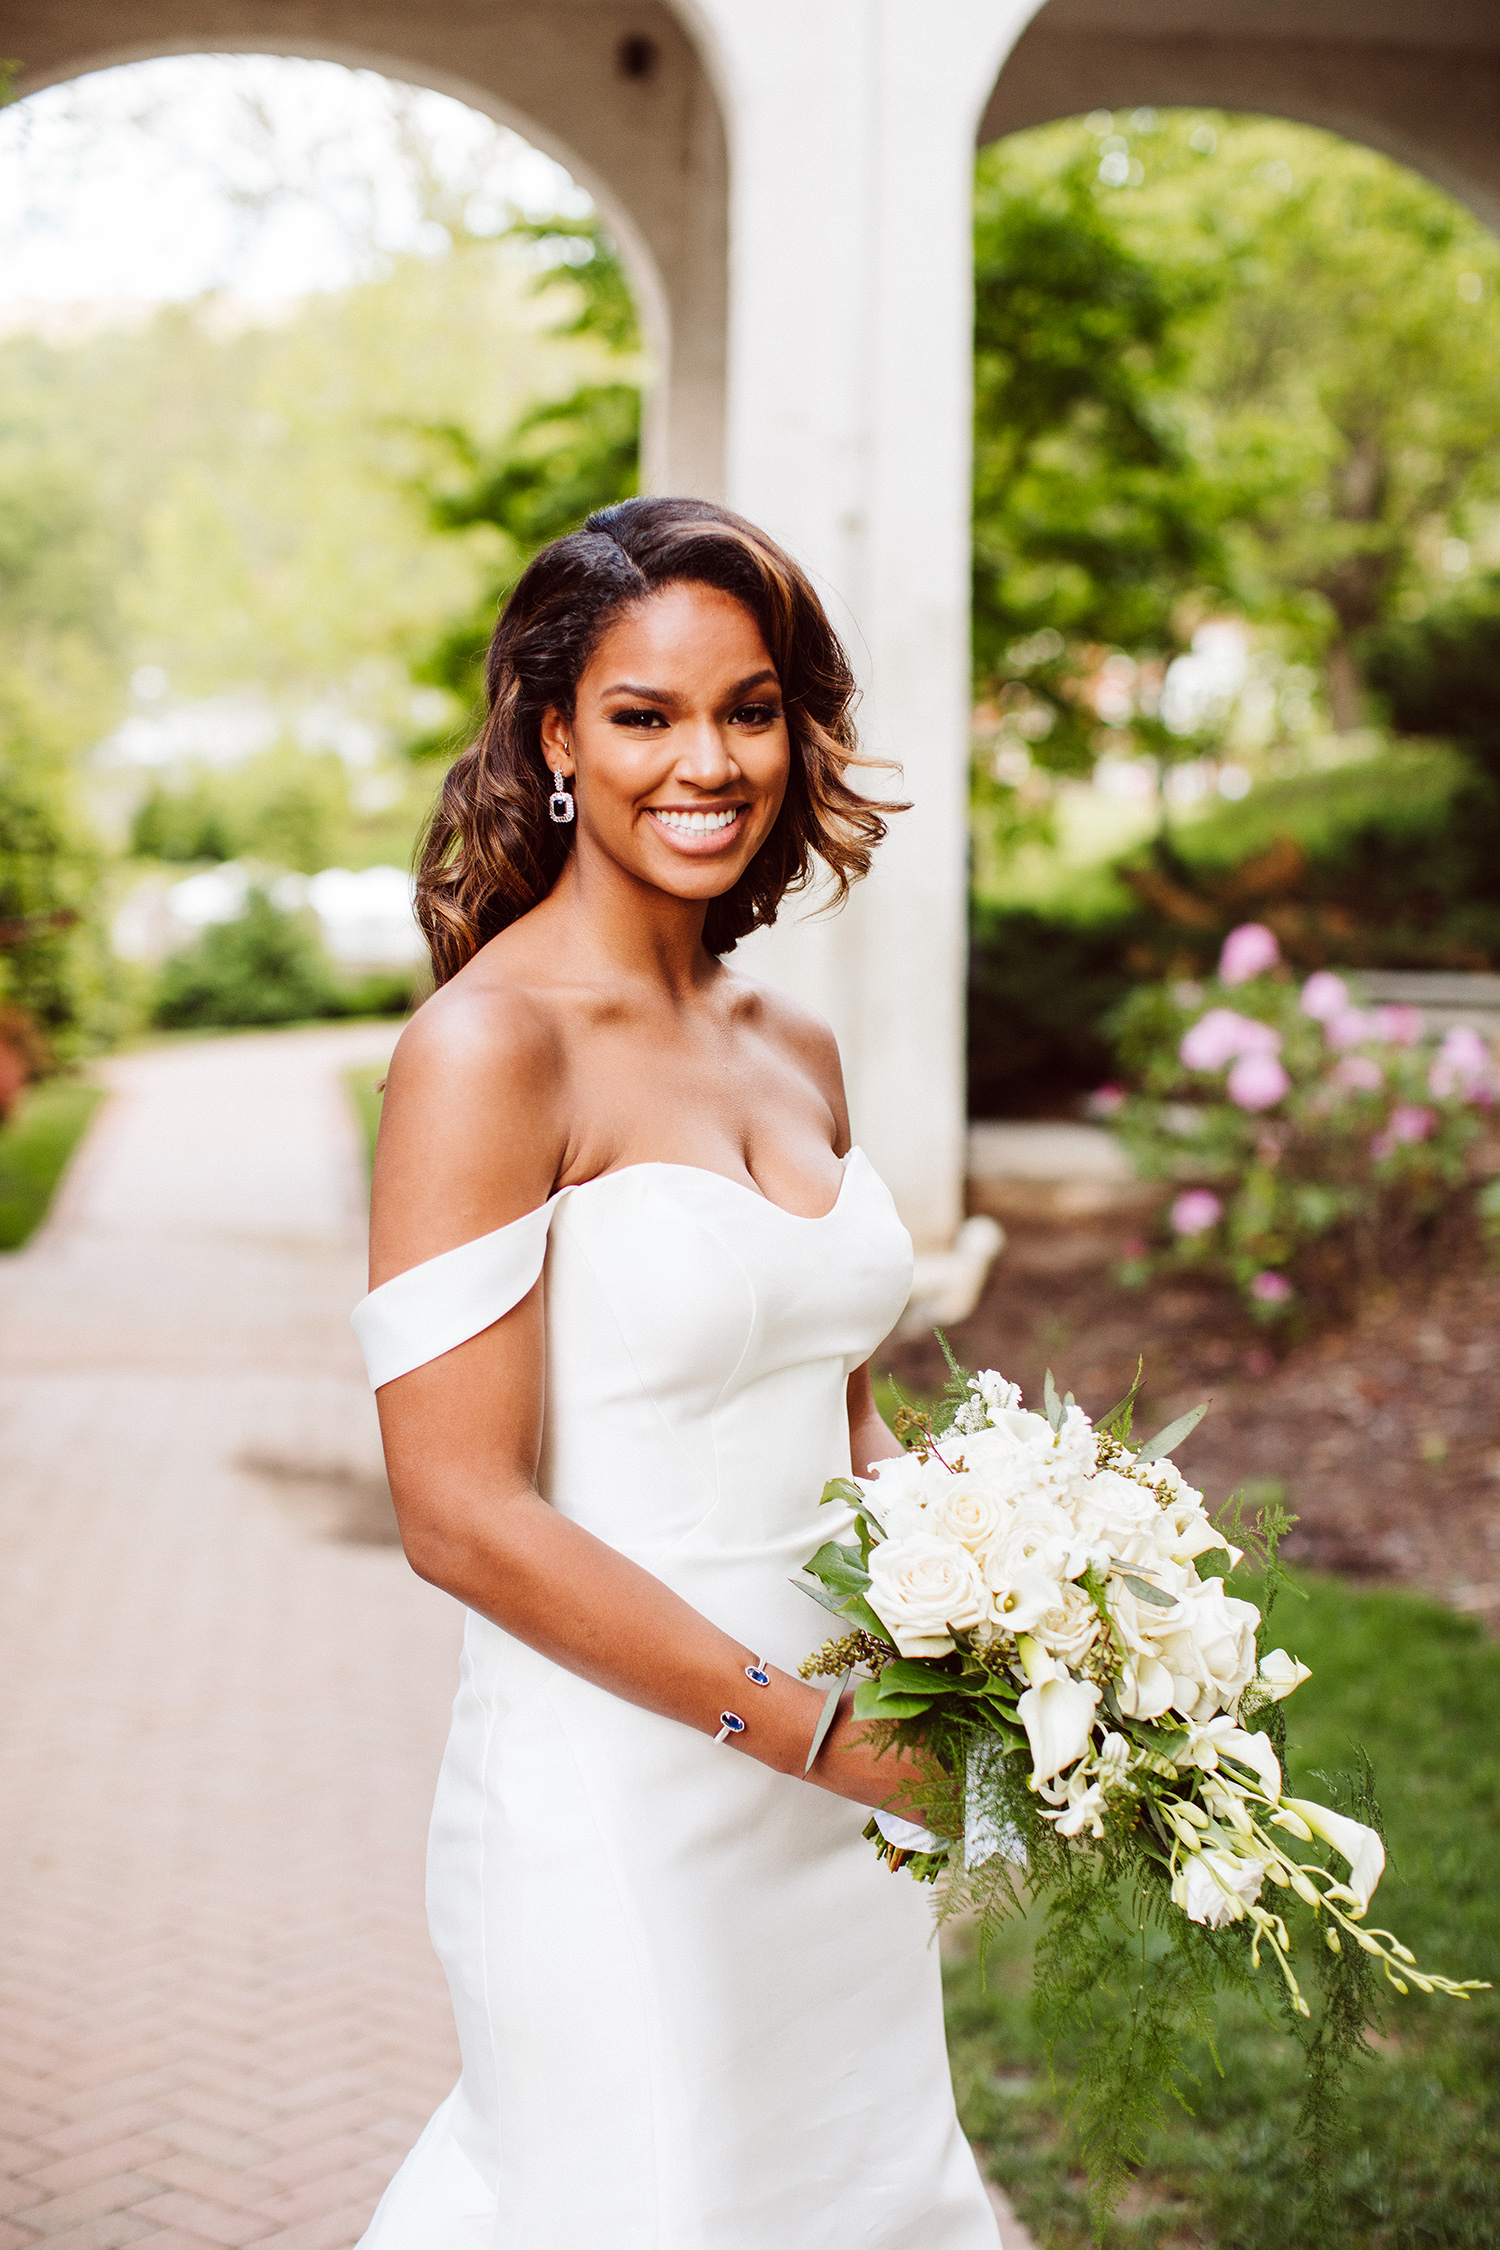 bryanna nick wedding bride white dress bouquet